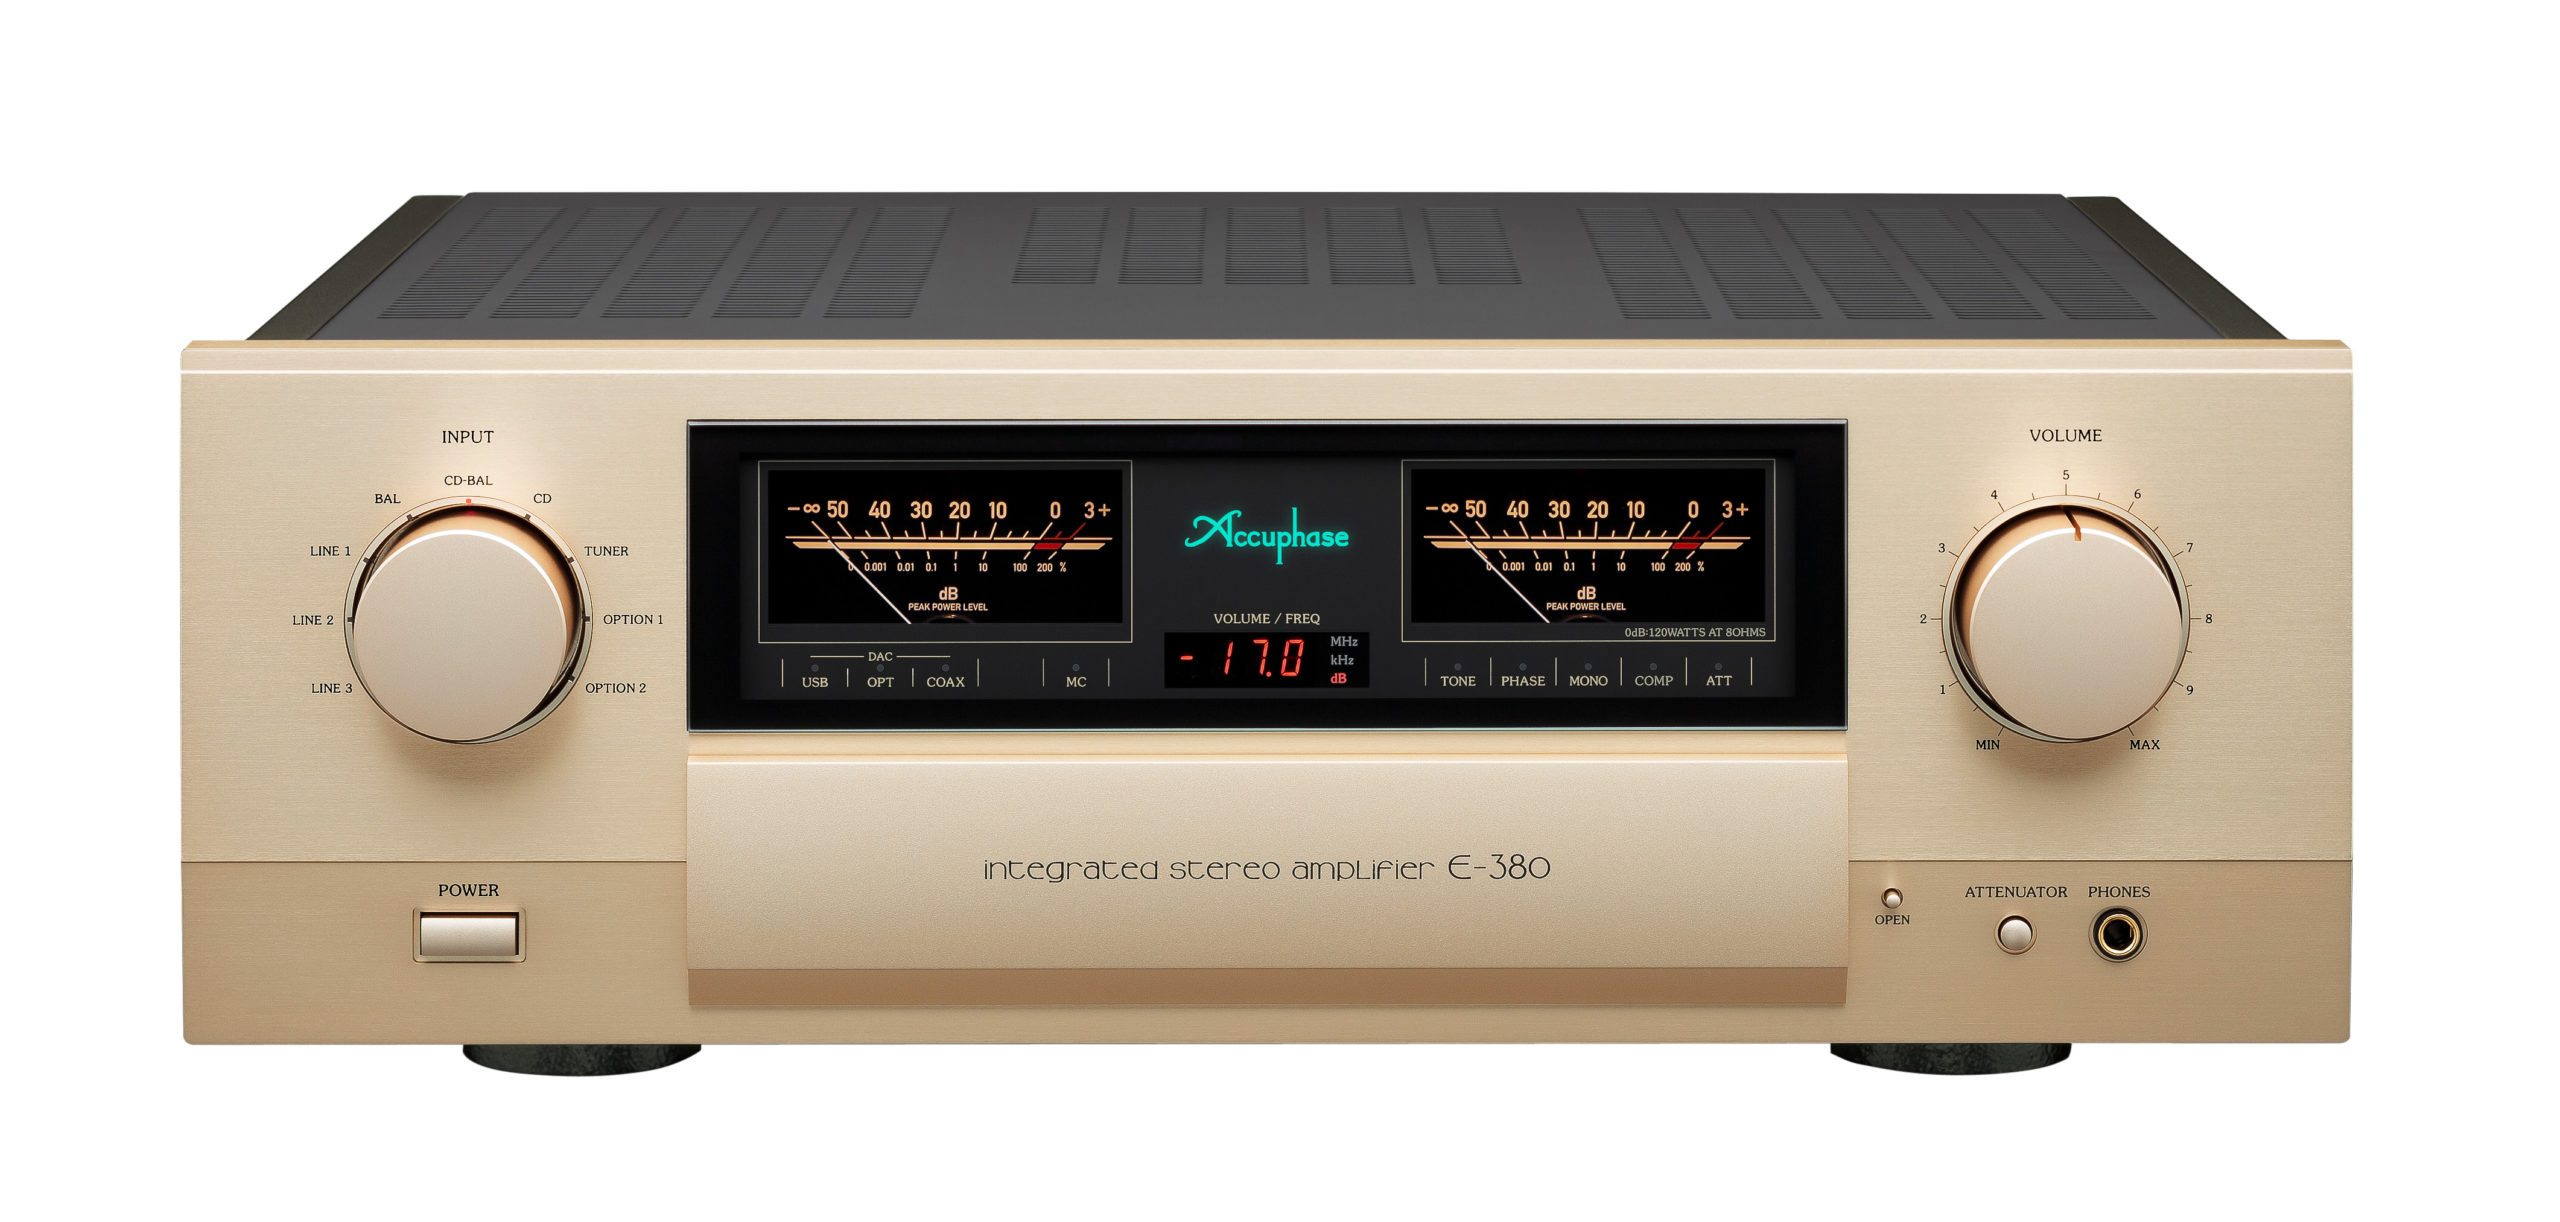 Accuphase E-380 versterker